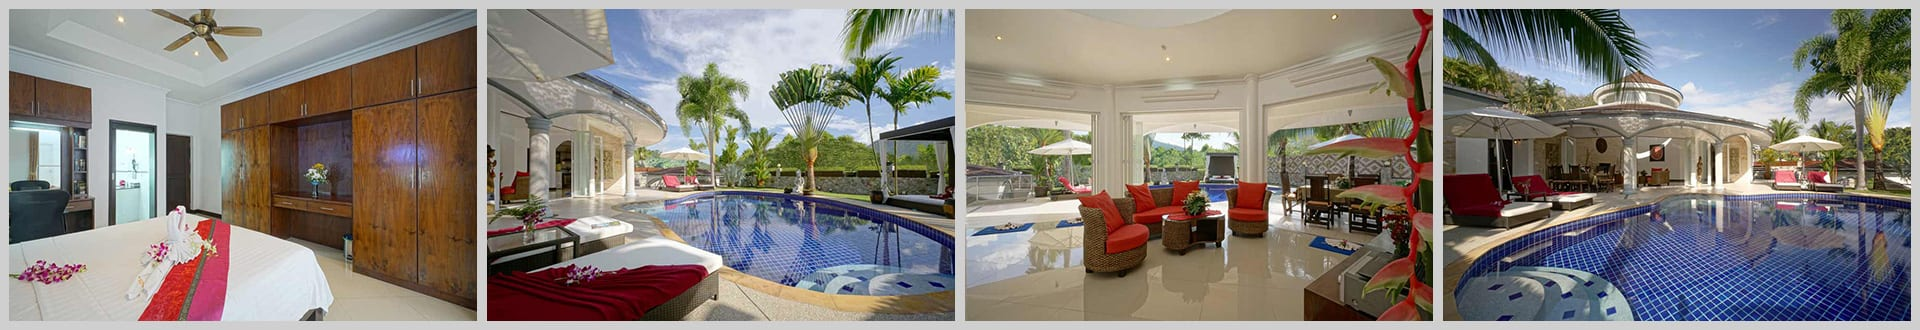 Lotus Luxury Pool Villa Phuket